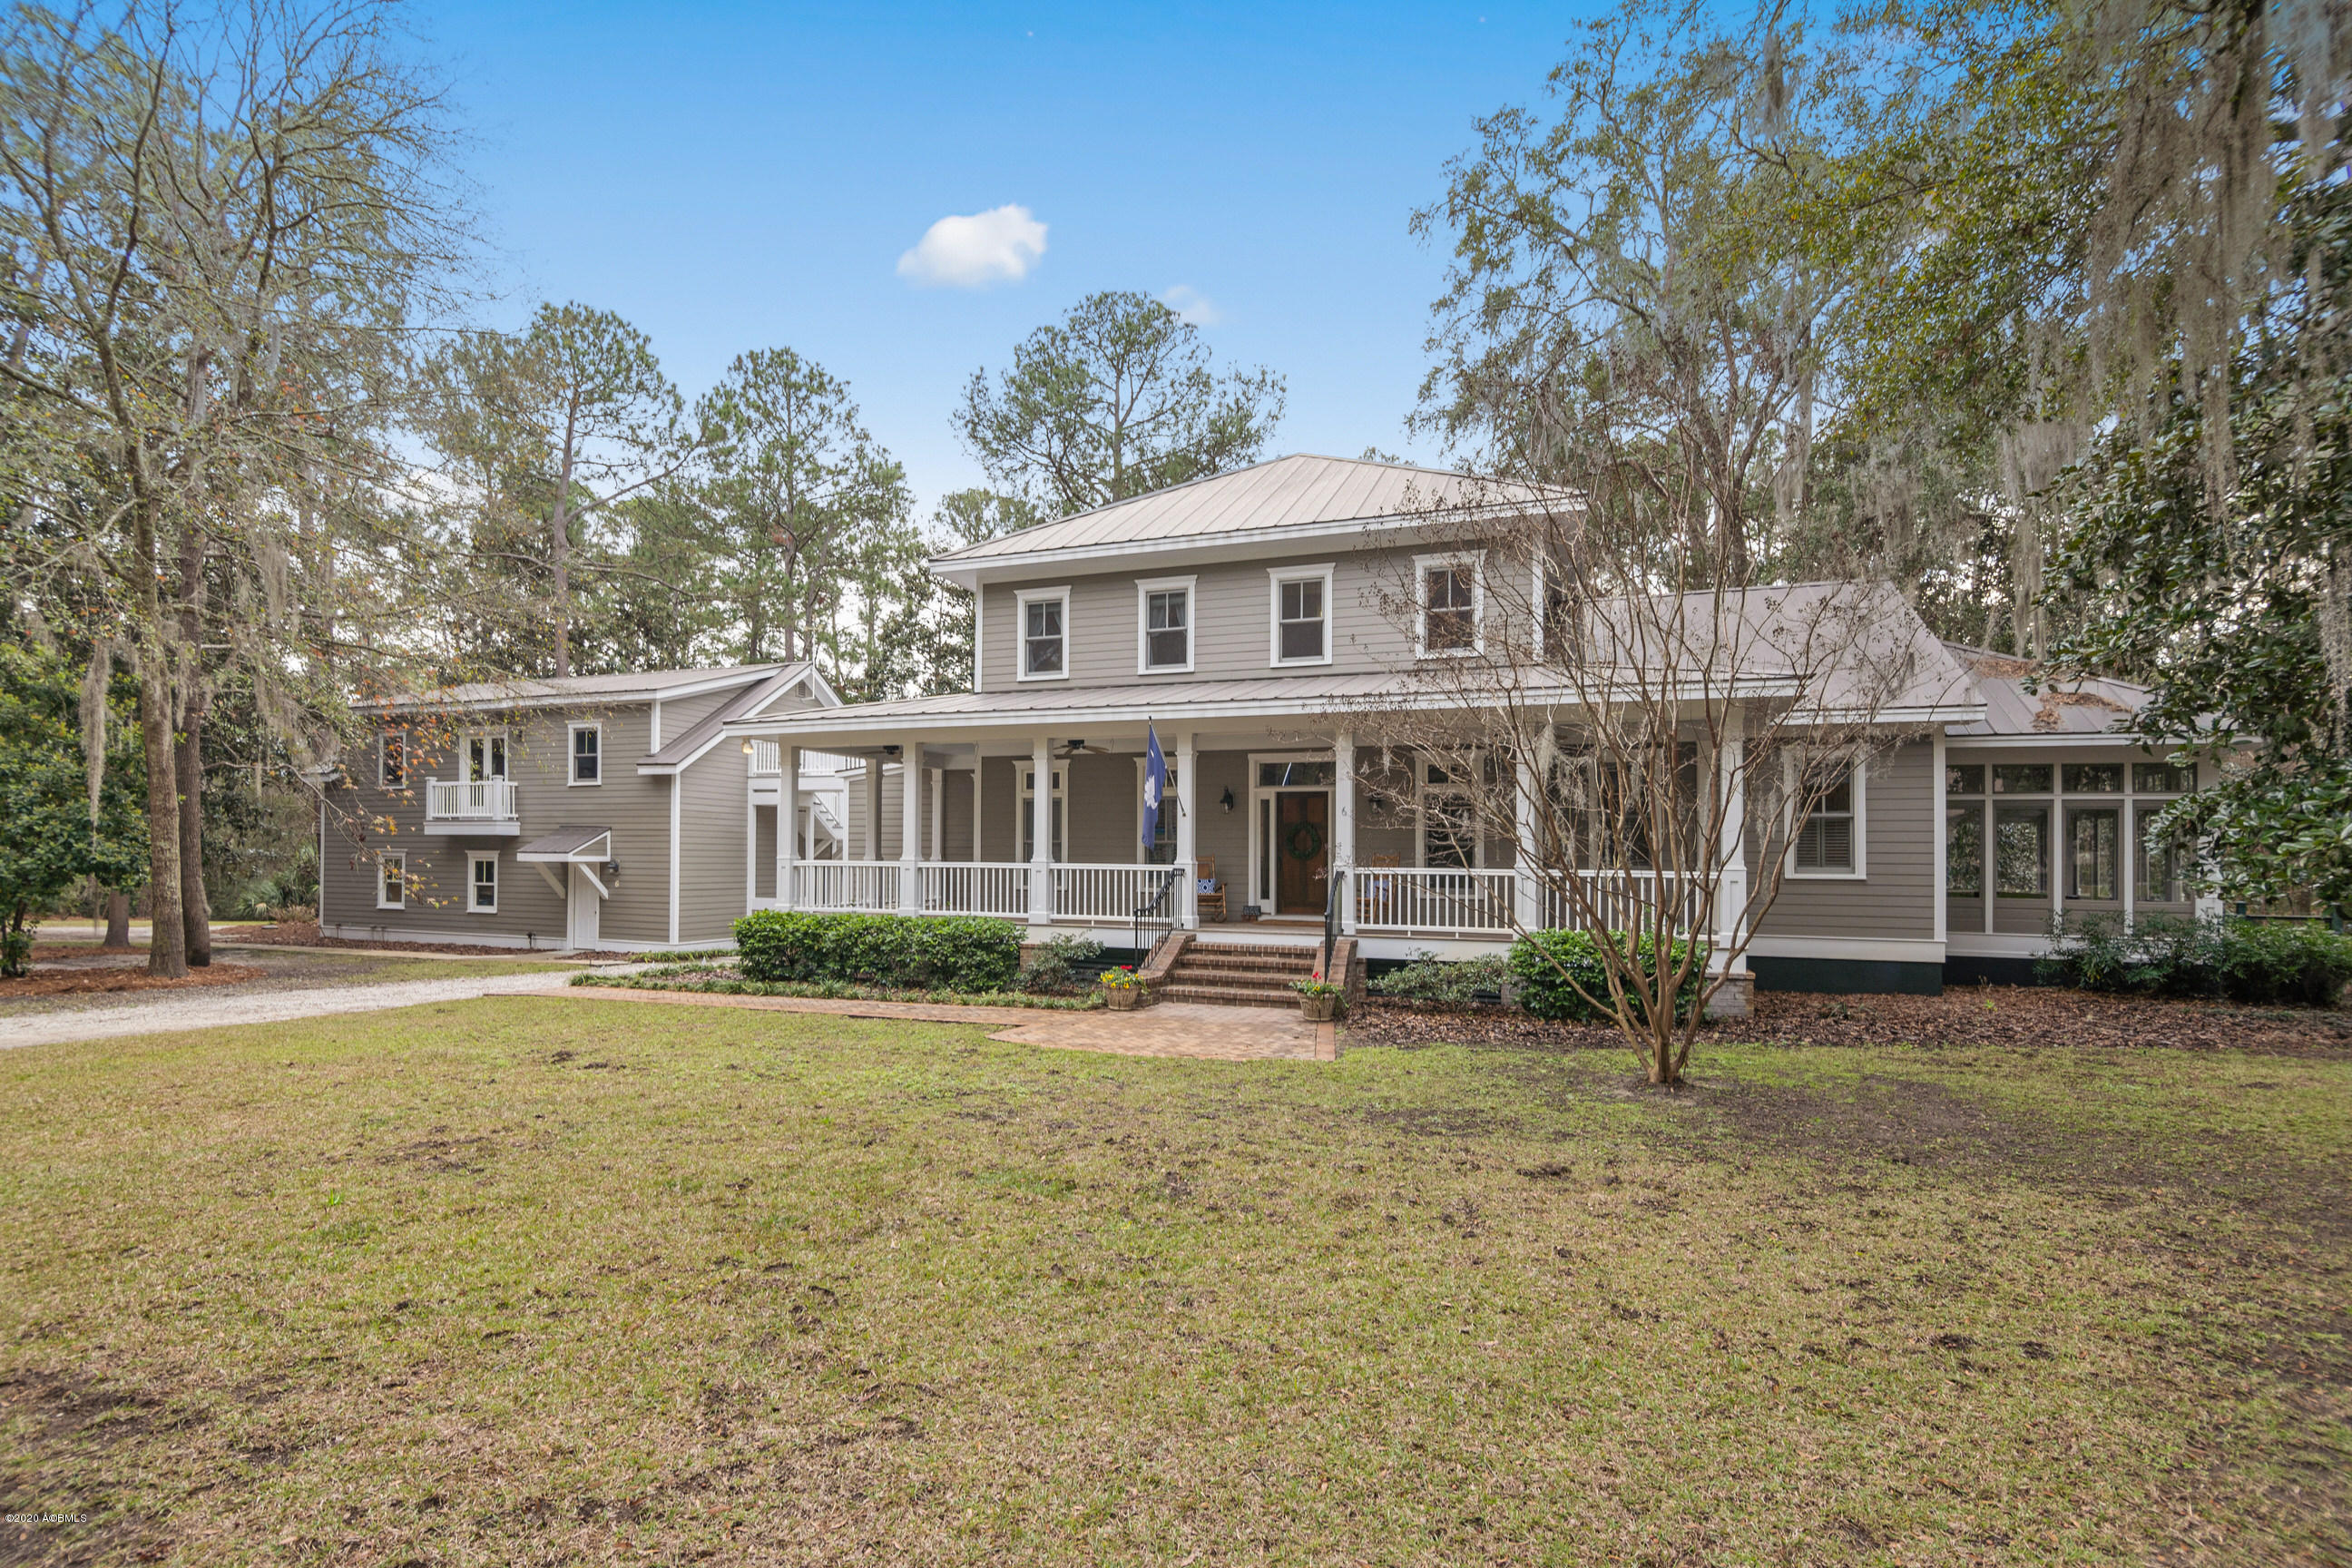 Photo of 6 Tuxedo Drive, Beaufort, SC 29907